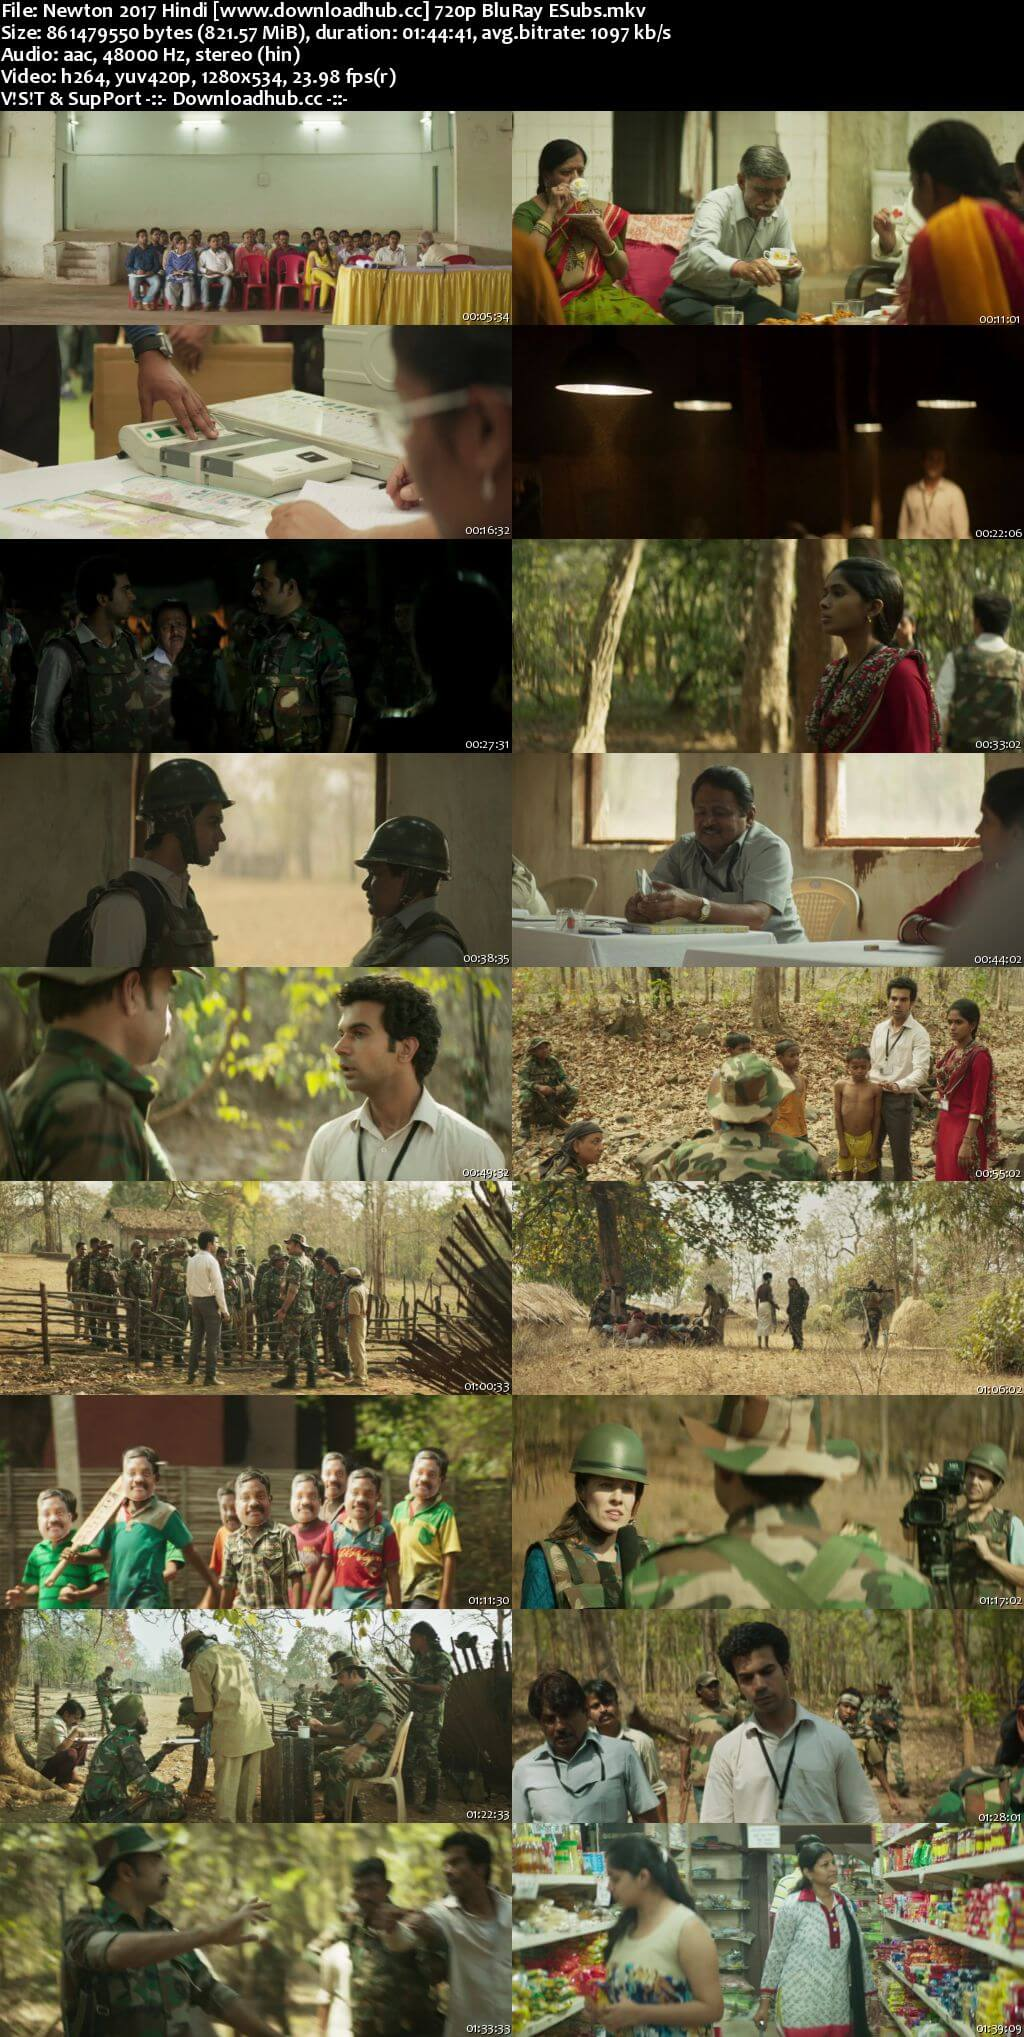 Newton 2017 Hindi 720p BluRay ESubs